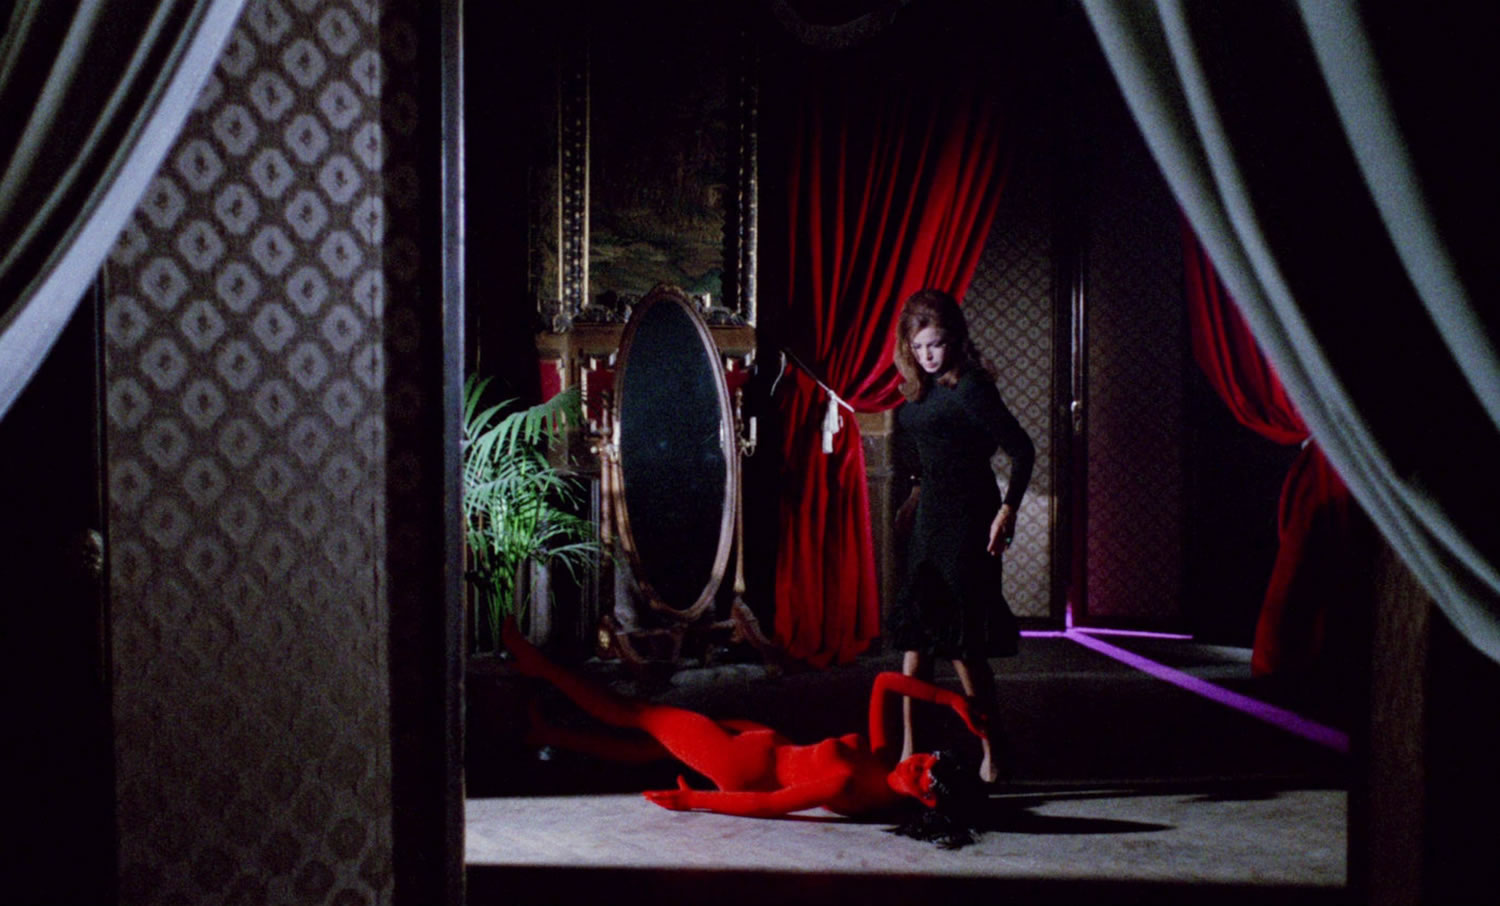 curtains and red mannequin, blood and black lace